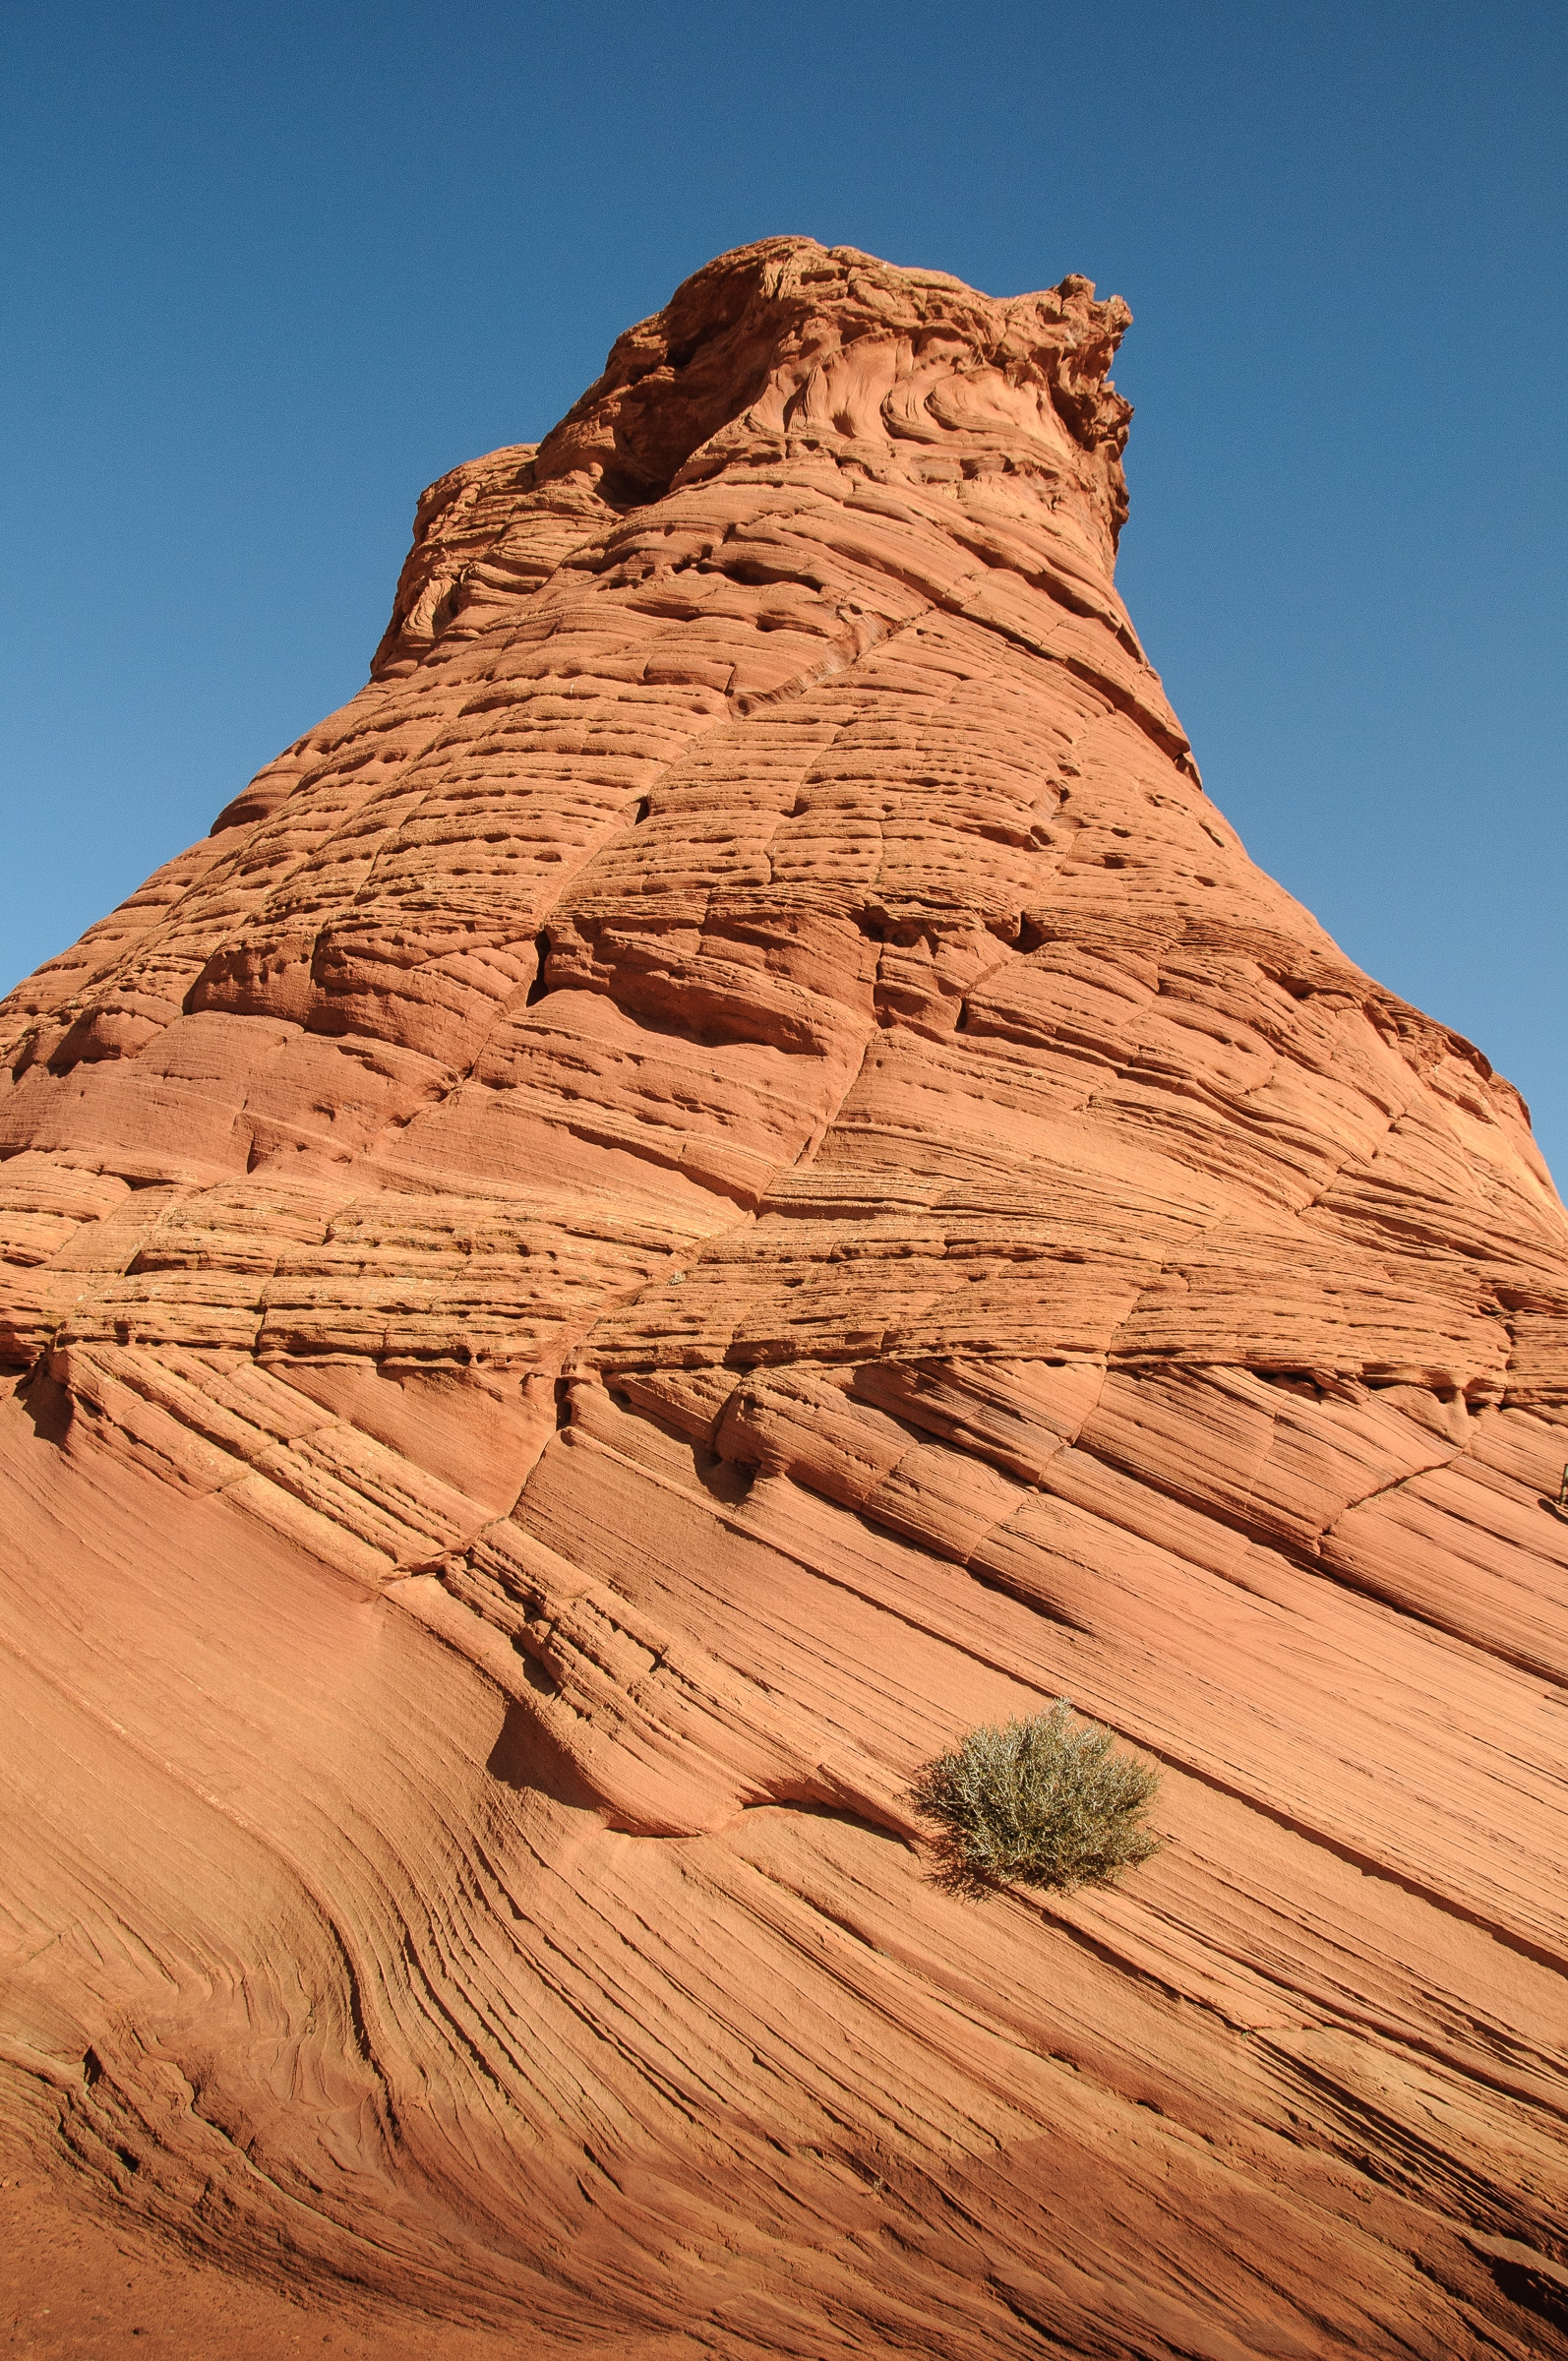 Bush growing on the side of a sandstone teepee in the Paw Hole area of South Coyote Buttes in the Vermillion Cliffs National Monument.